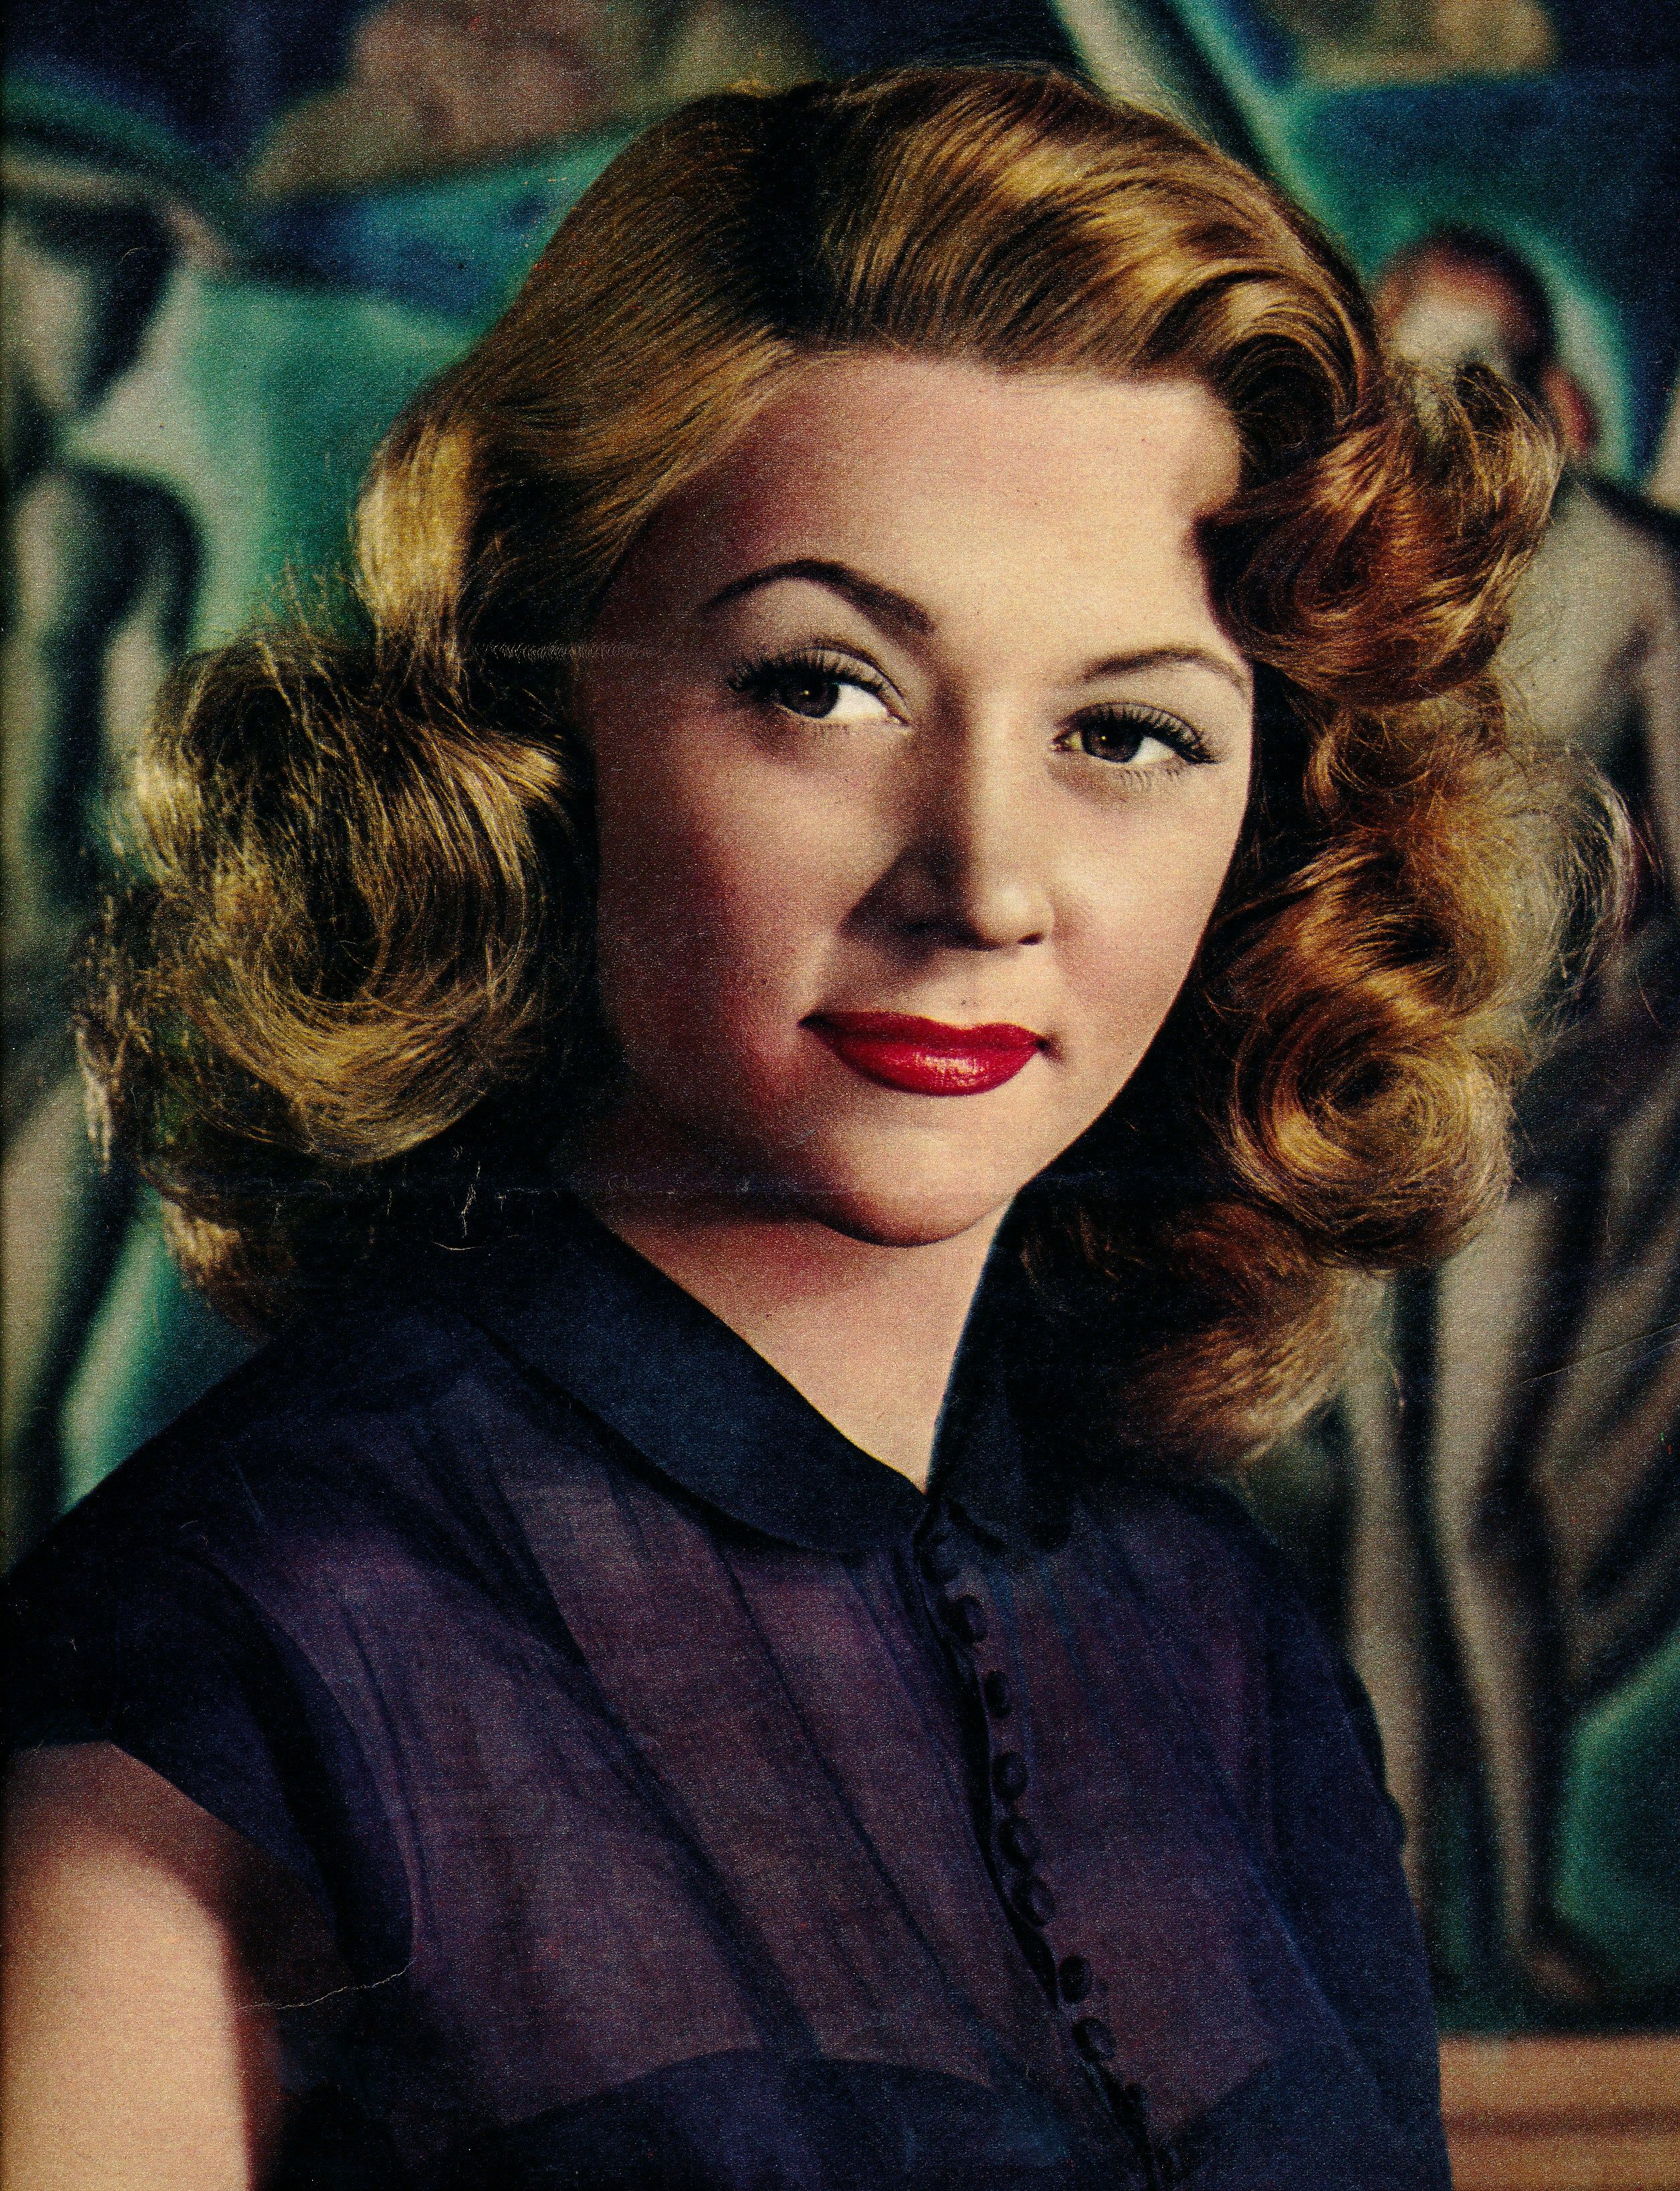 Gloria Grahame Images pictures of gloria grahame - pictures of celebrities in 2019